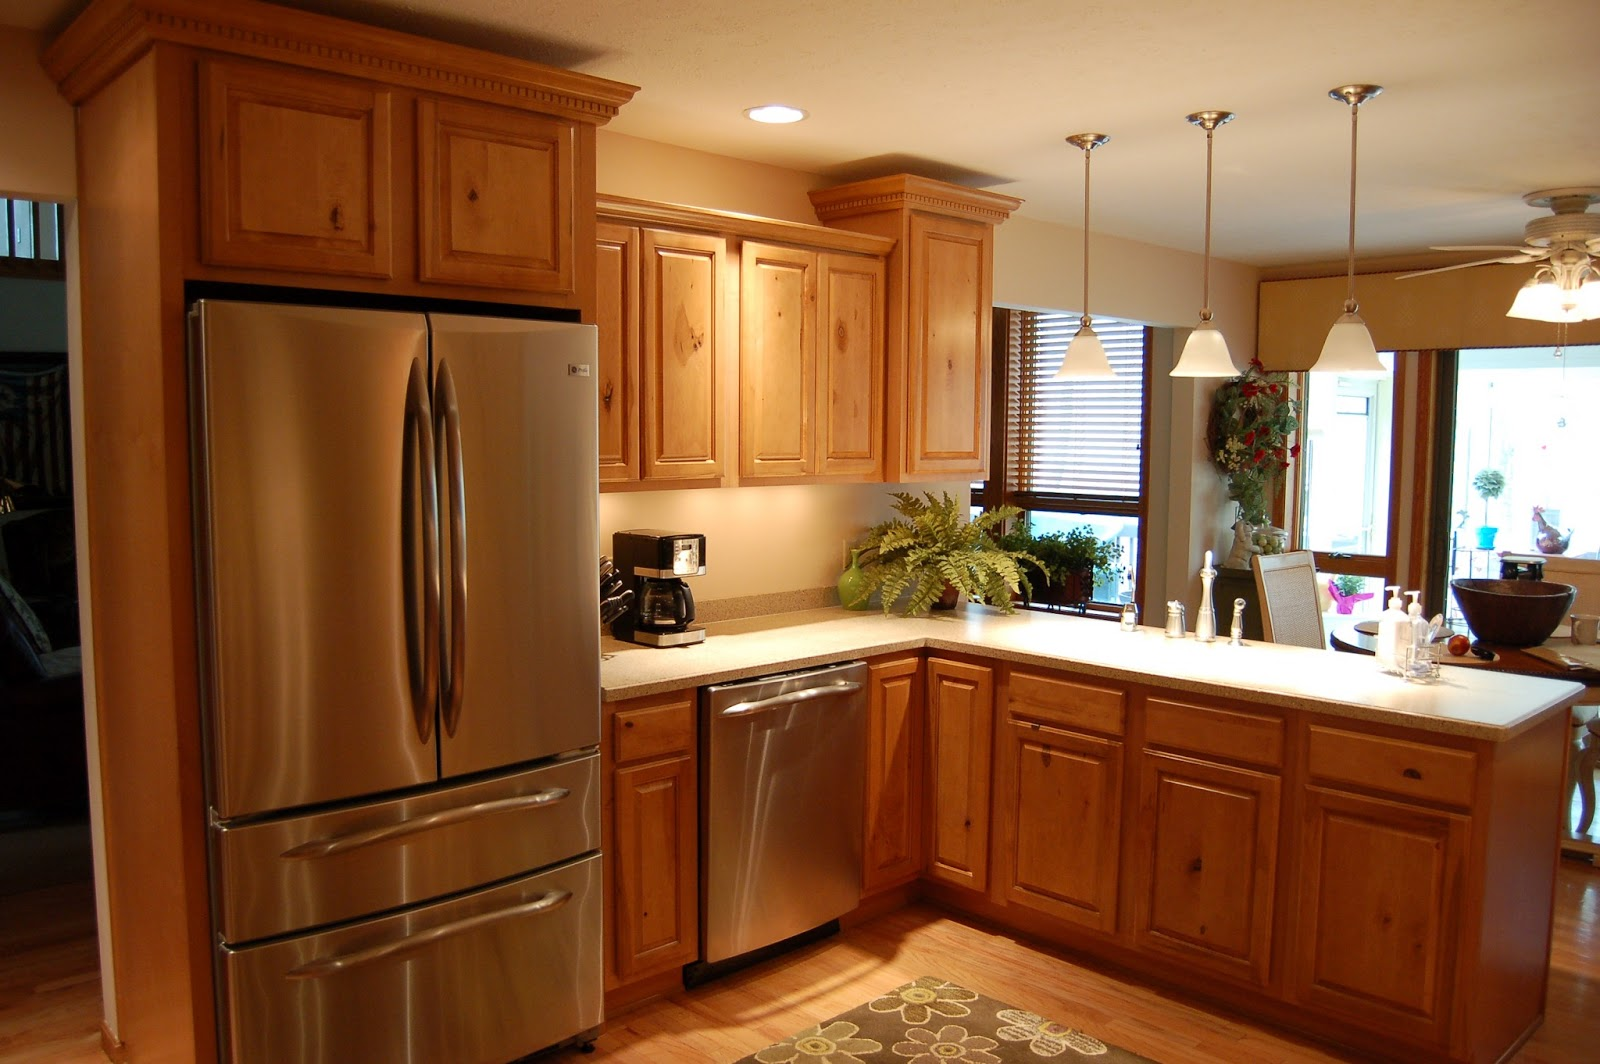 chicago kitchen remodeling ideas kitchen remodeling chicago On kitchen remodel design ideas